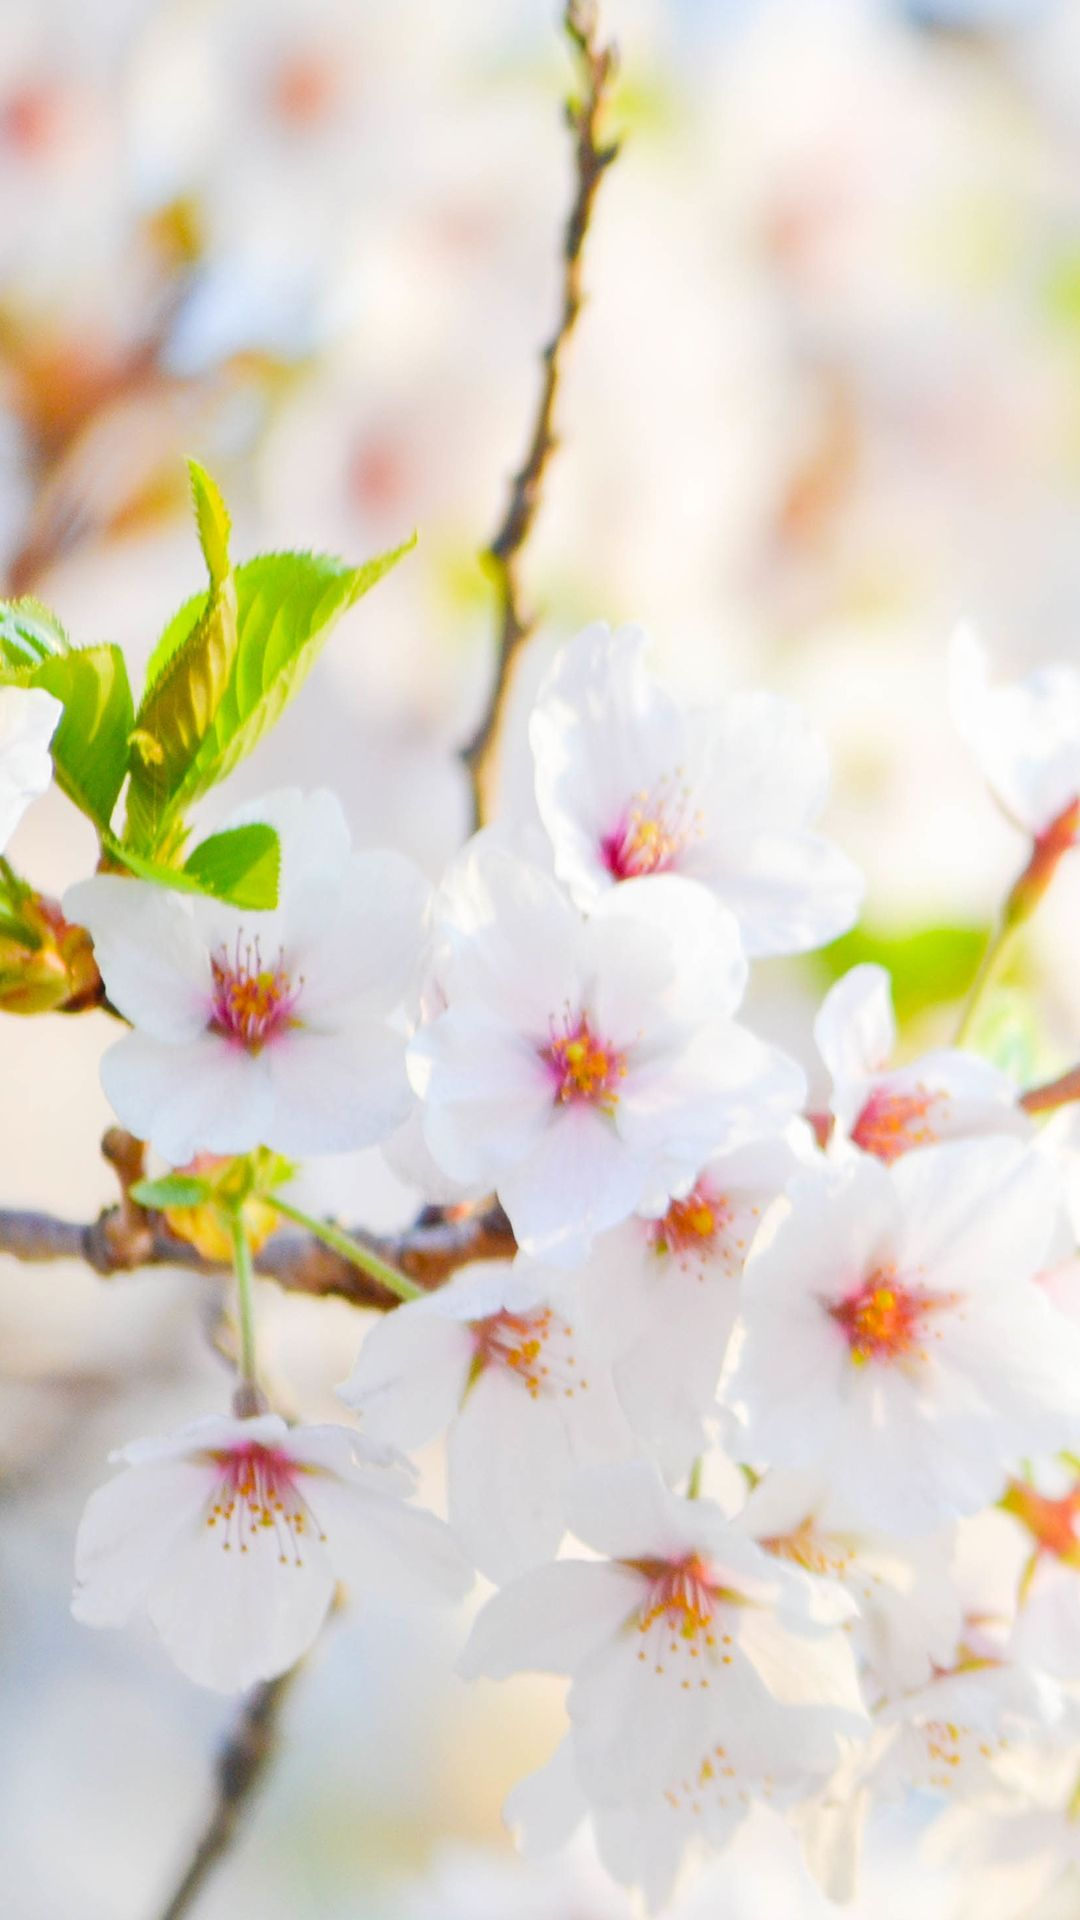 White Flower Hd Wallpapers Top Free White Flower Hd